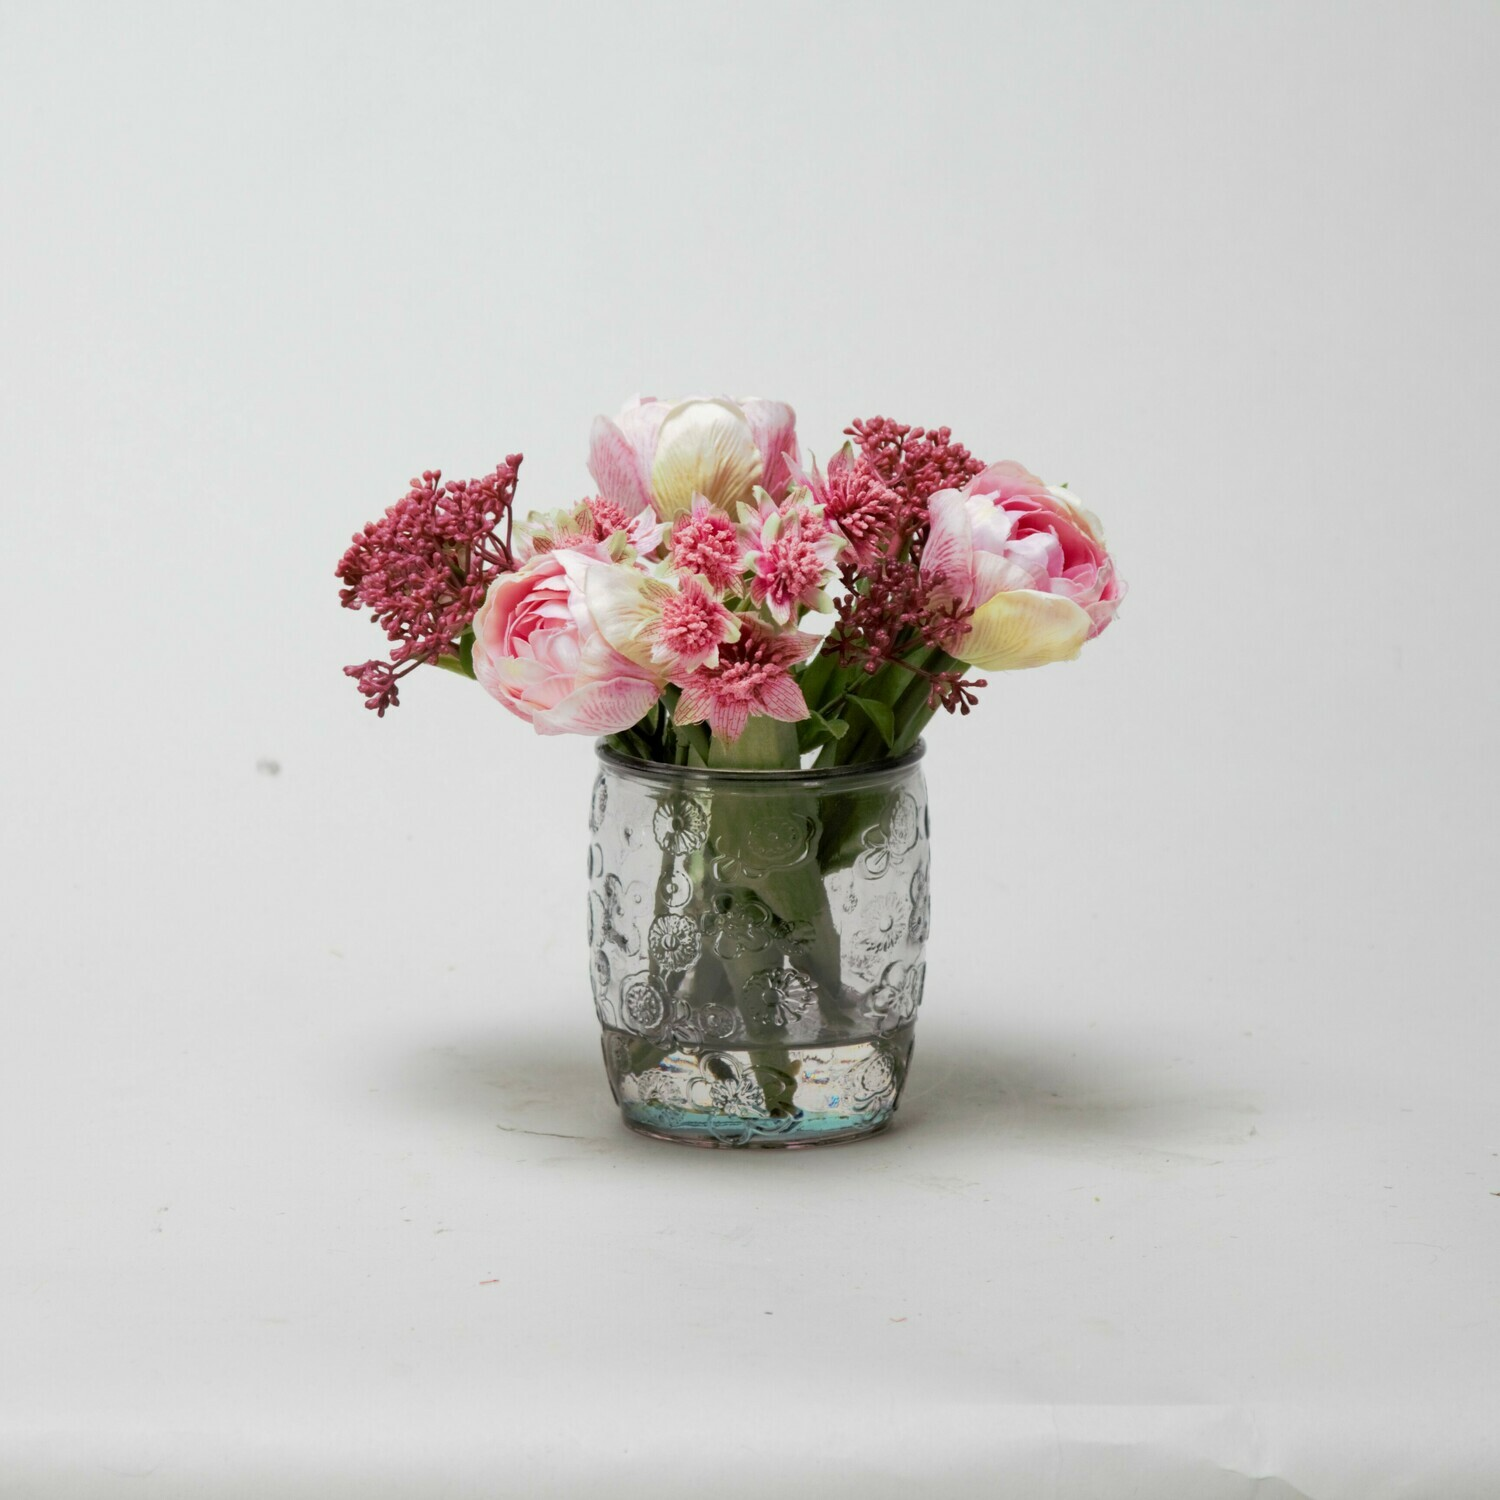 Pink Tulips and Astrantia in textured pink beaker vase